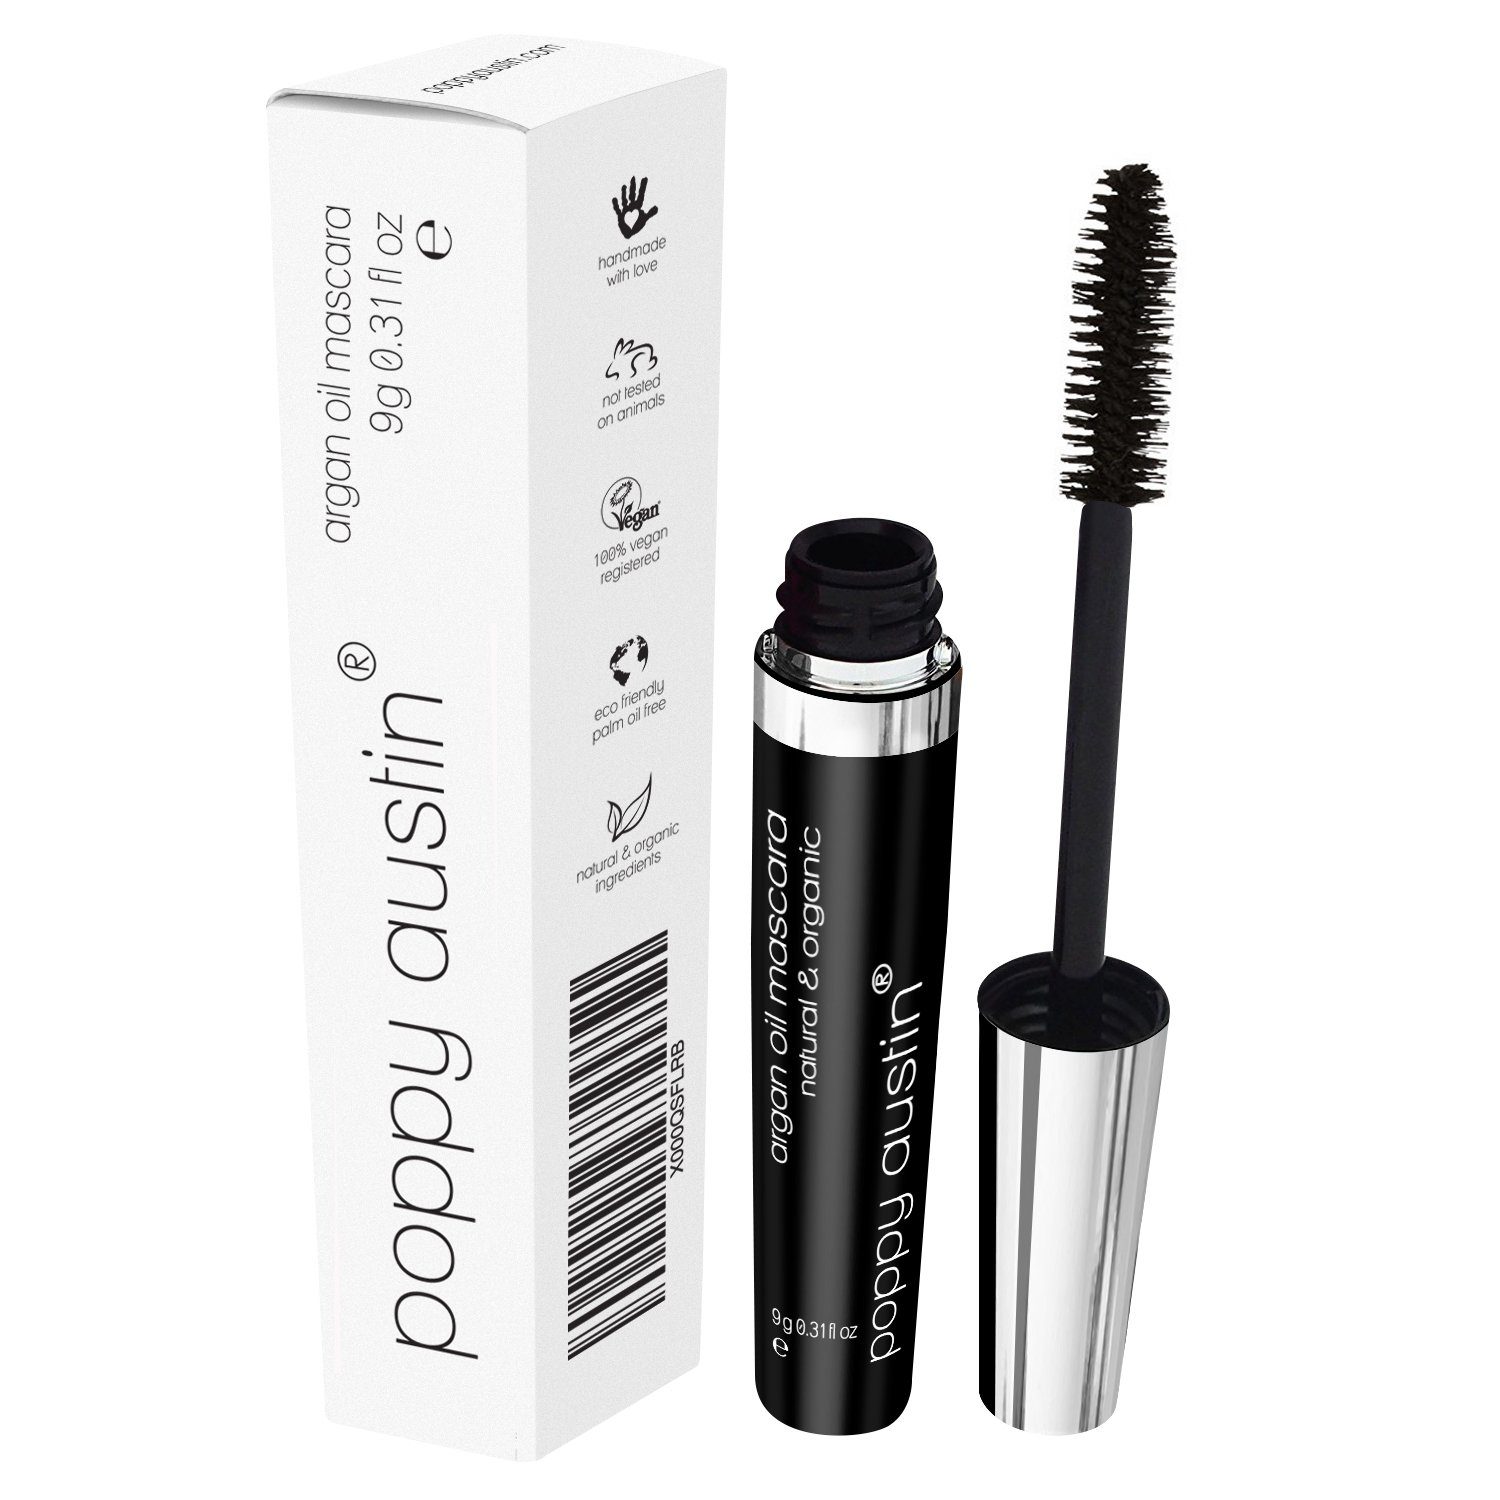 FINEST Vegan & Organic Lengthening Mascara Black With Argan Oil - Cruelty-Free, Best Natural Volumising, Thickening, Smudge Proof, Hypoallergenic, Water Based - for Sensitive Eyes & Short Lashes Poppy Austin